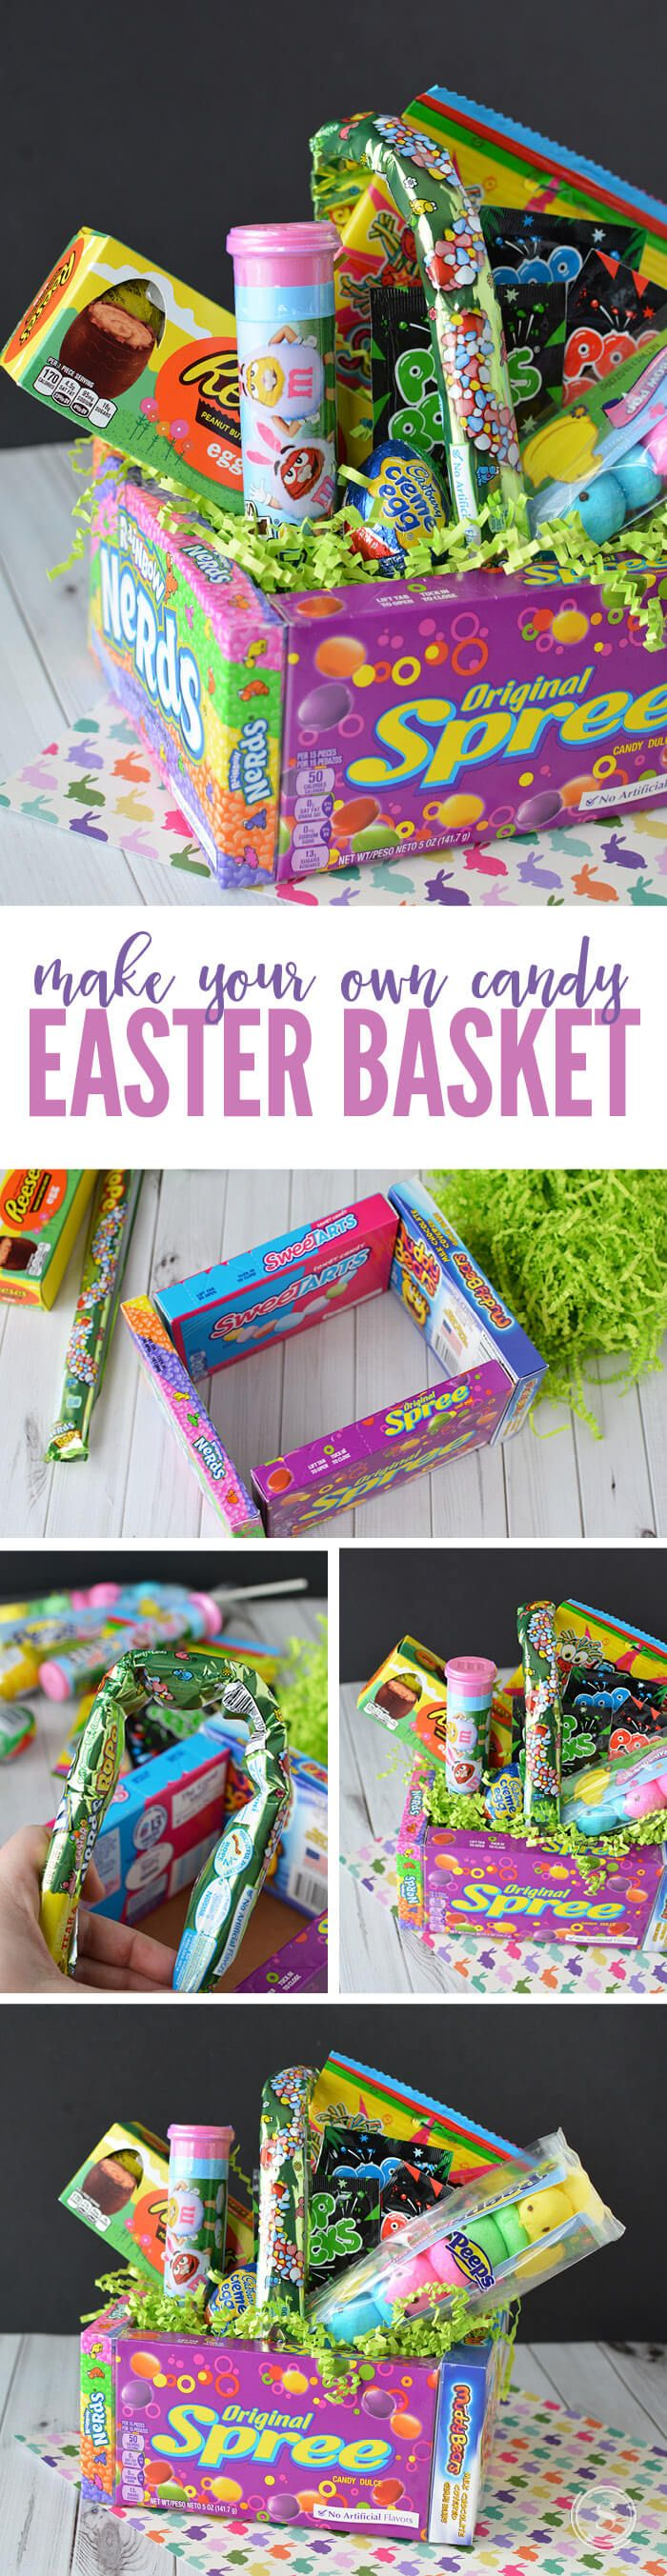 Best 25 easter gifts for kids ideas on pinterest diy gifts diy candy easter basket an easy and creative way to make a fun easter basket negle Choice Image